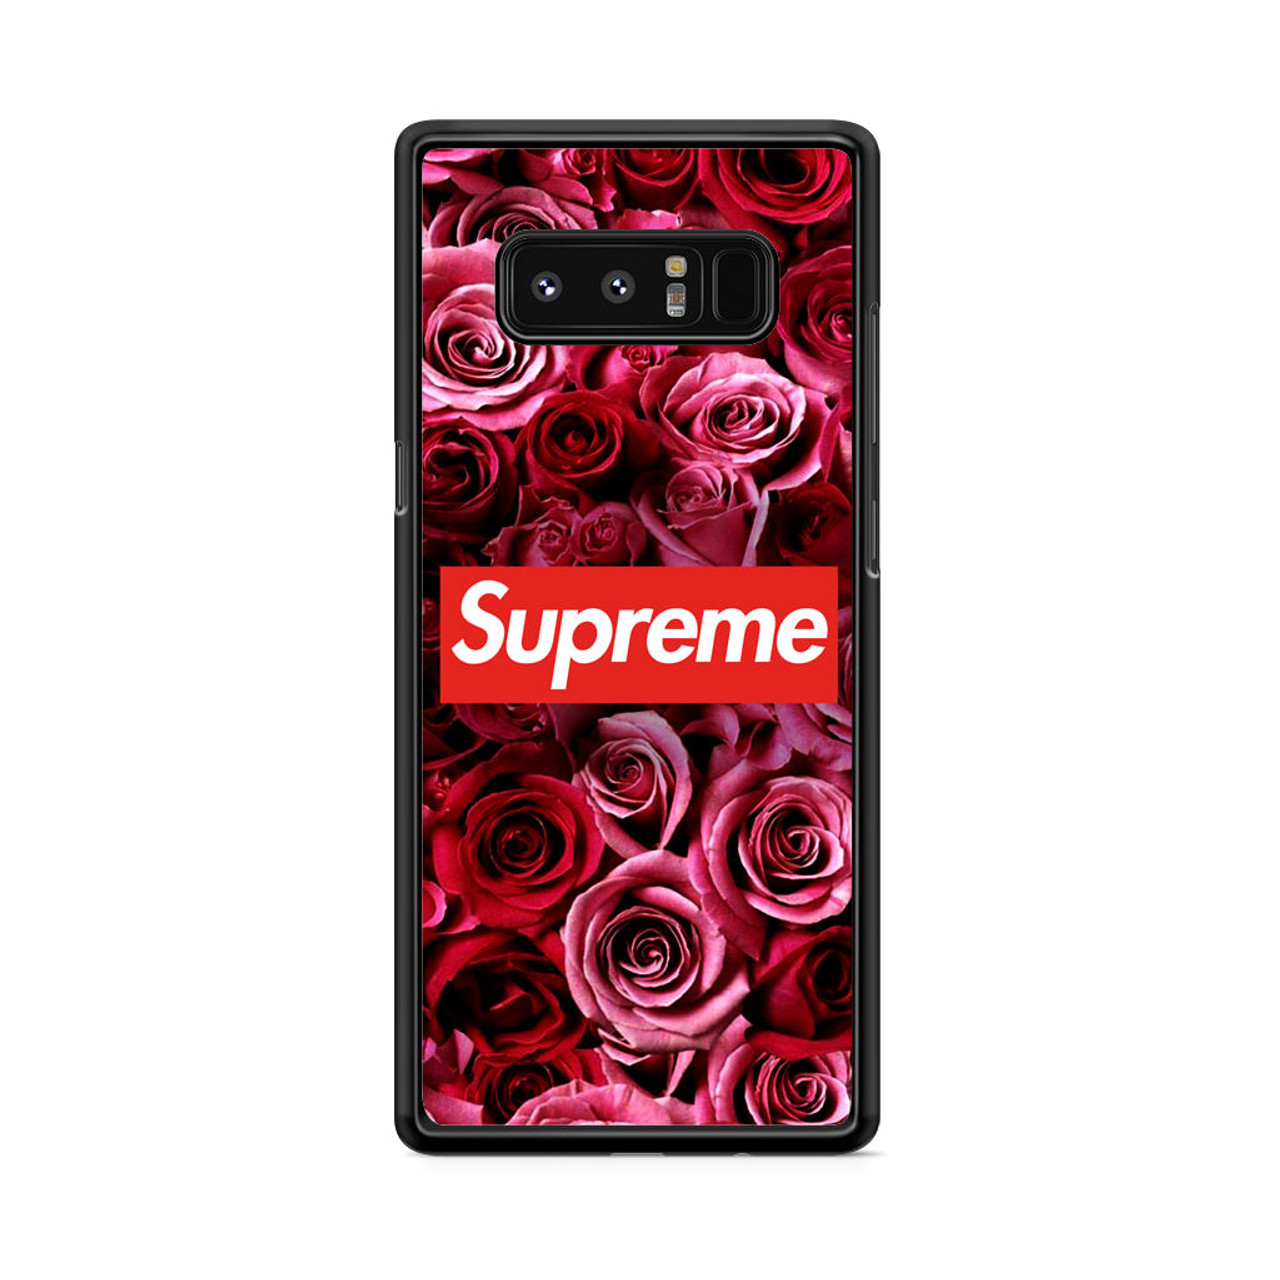 new arrival dcf90 6176b Supreme In Roses Samsung Galaxy Note 8 Case